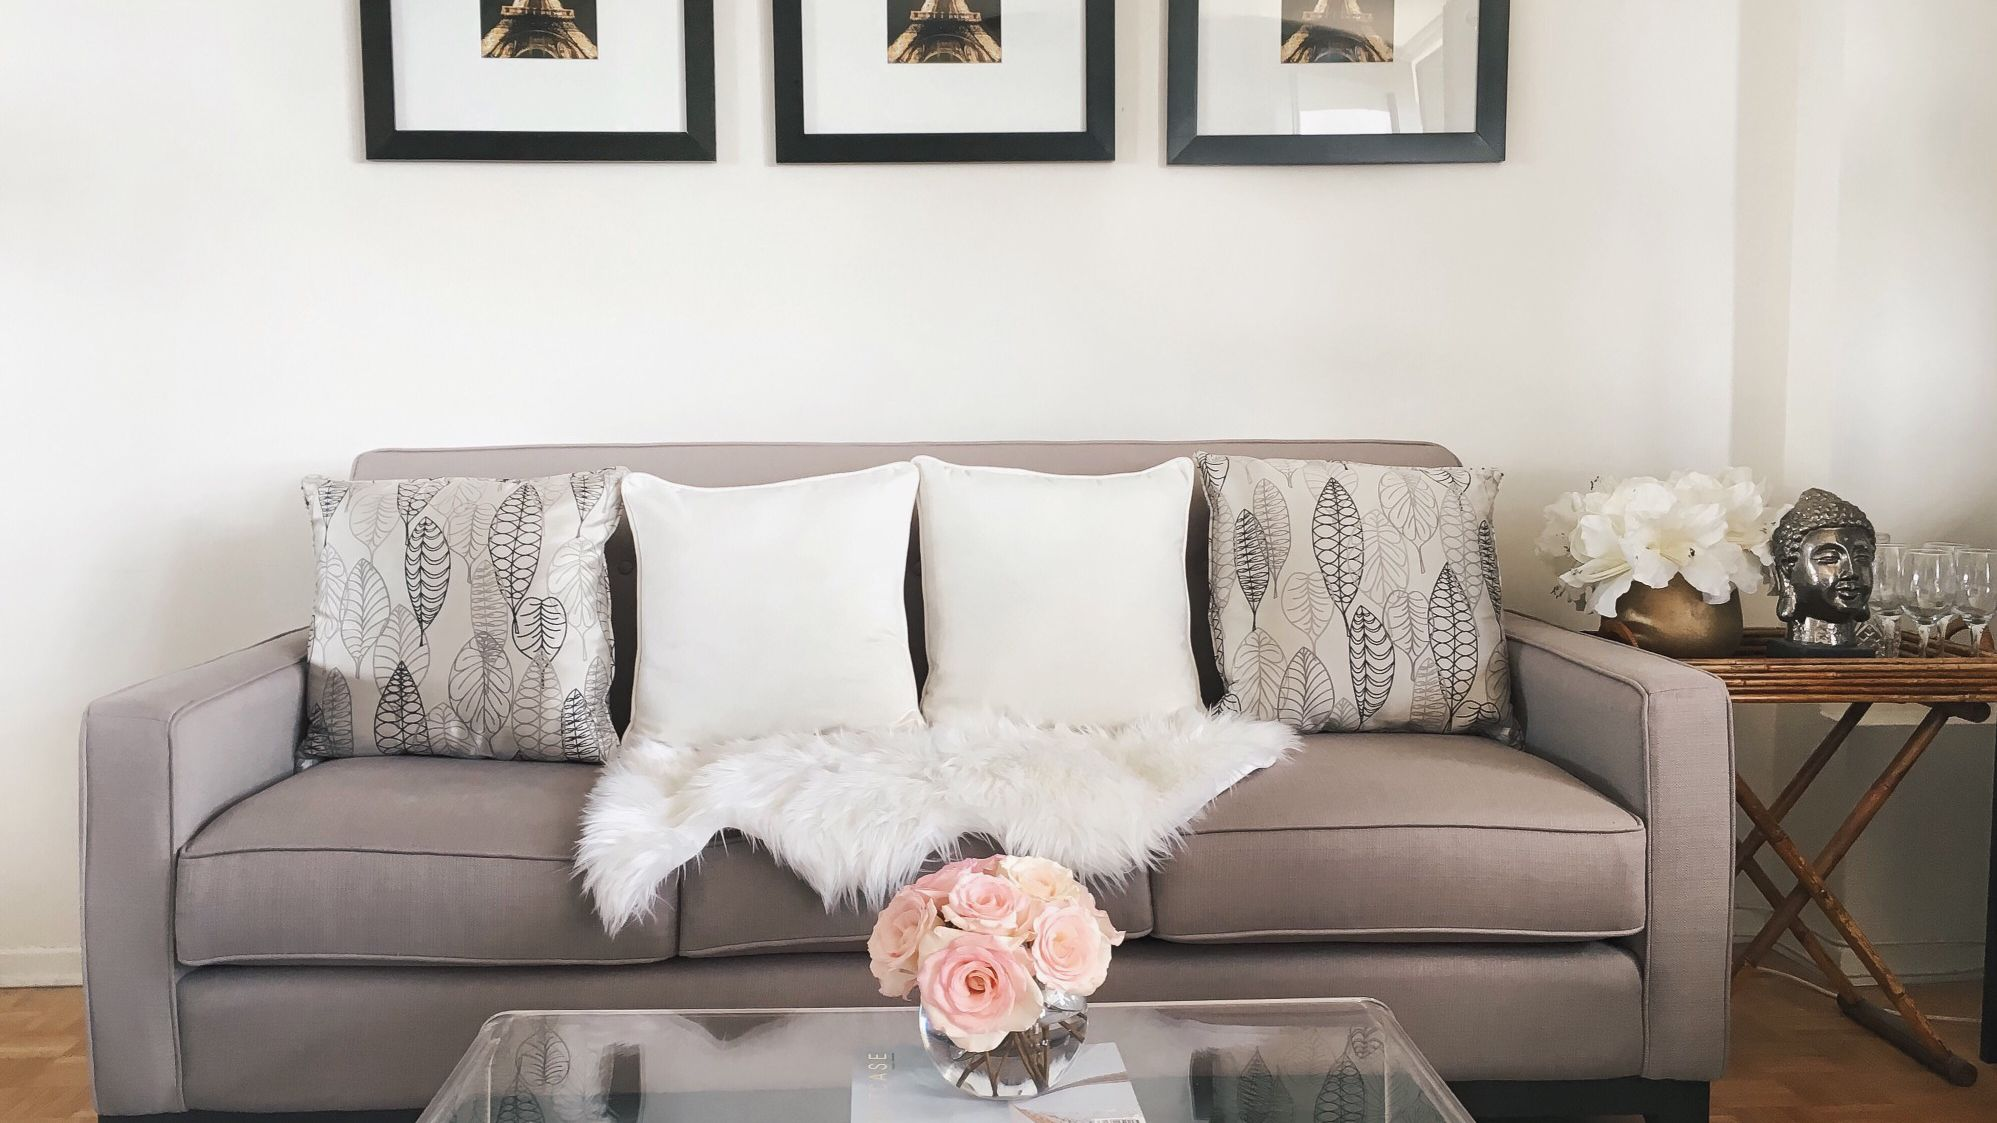 11 Common Decorating Mistakes To Avoid